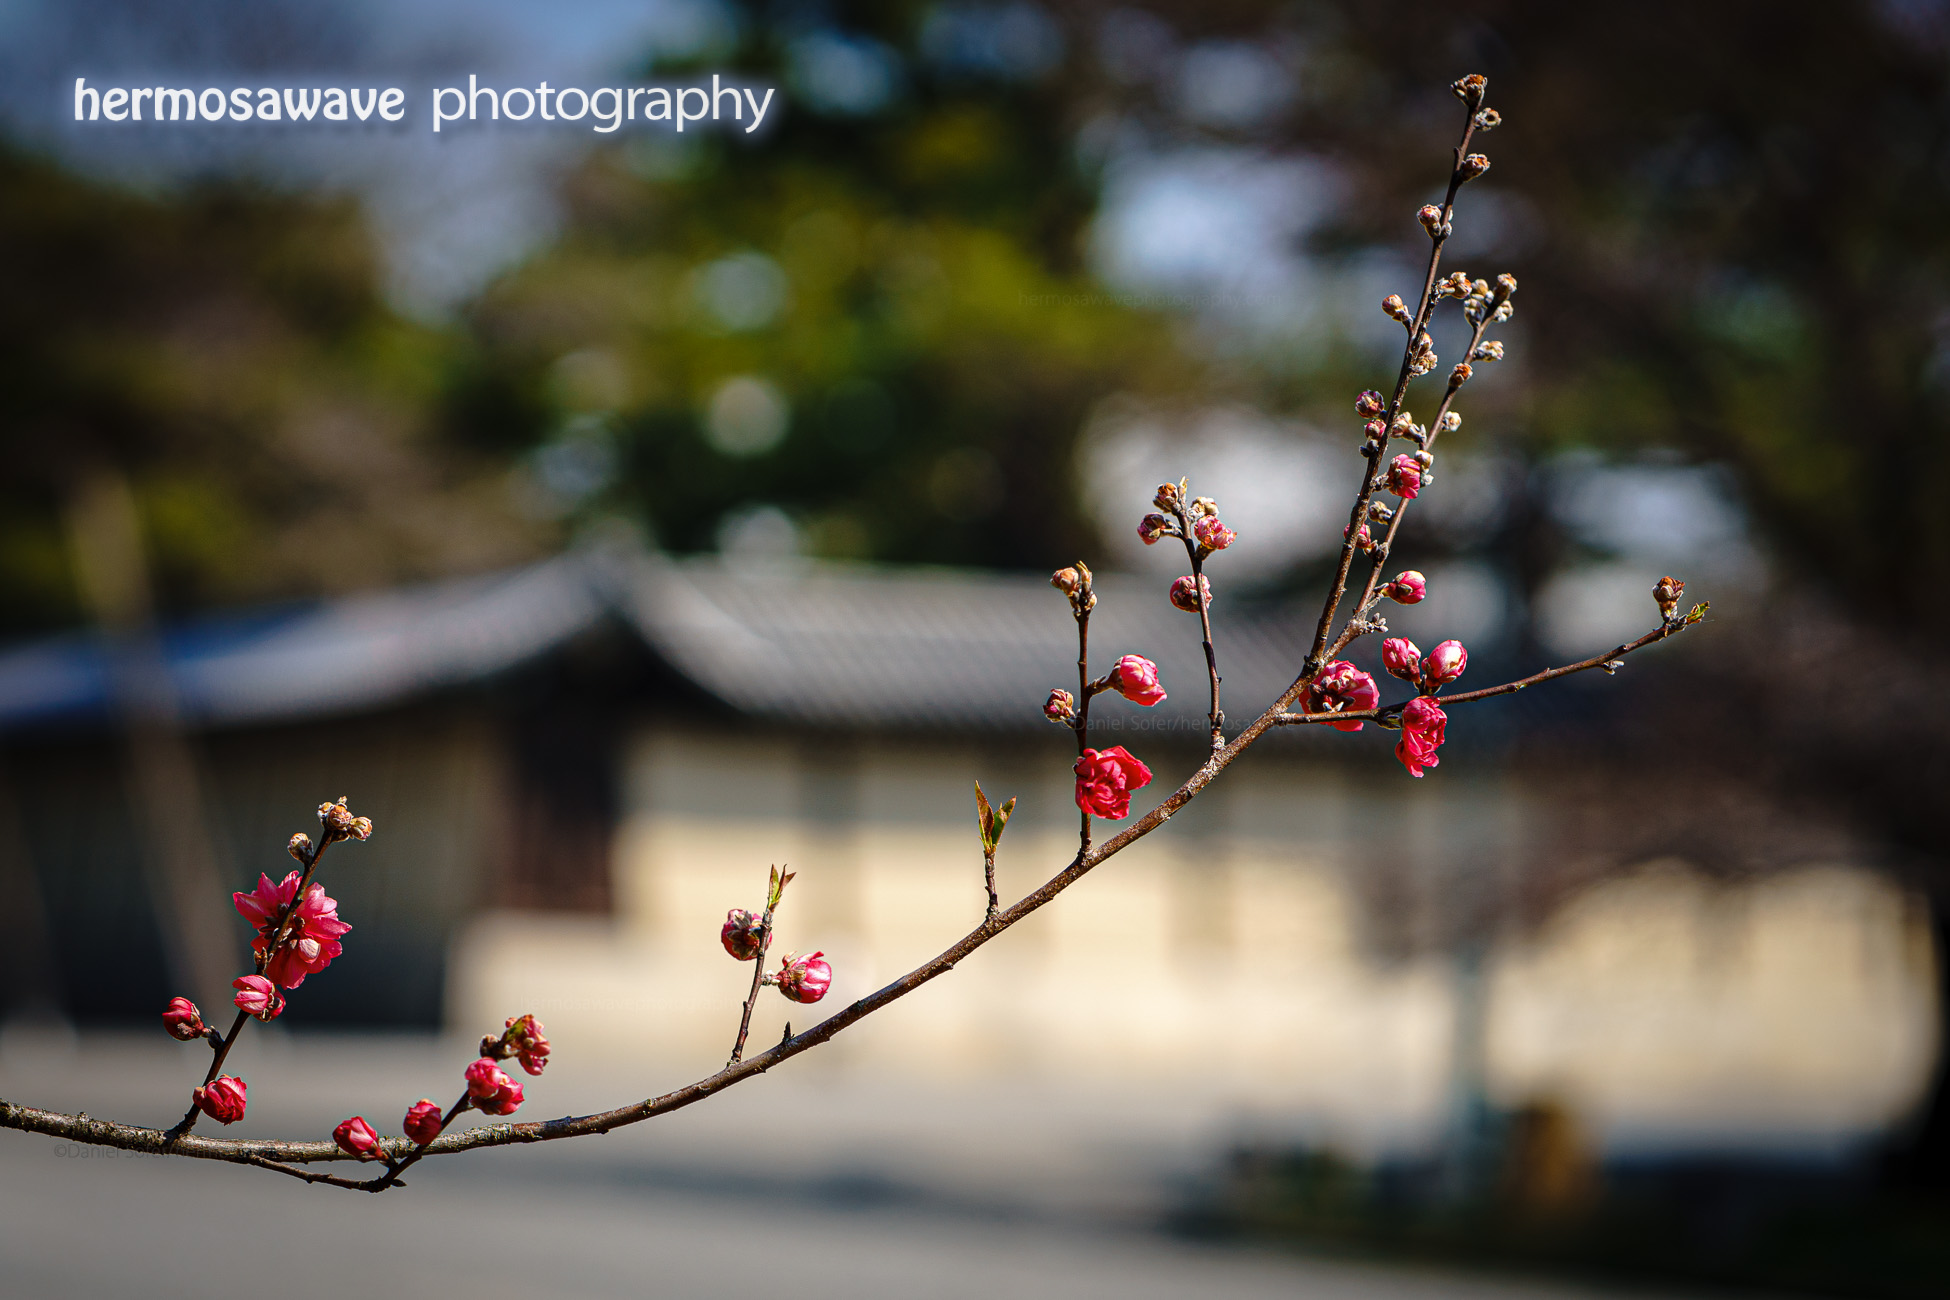 Plum Blossoms at Gosho・京都御所に梅